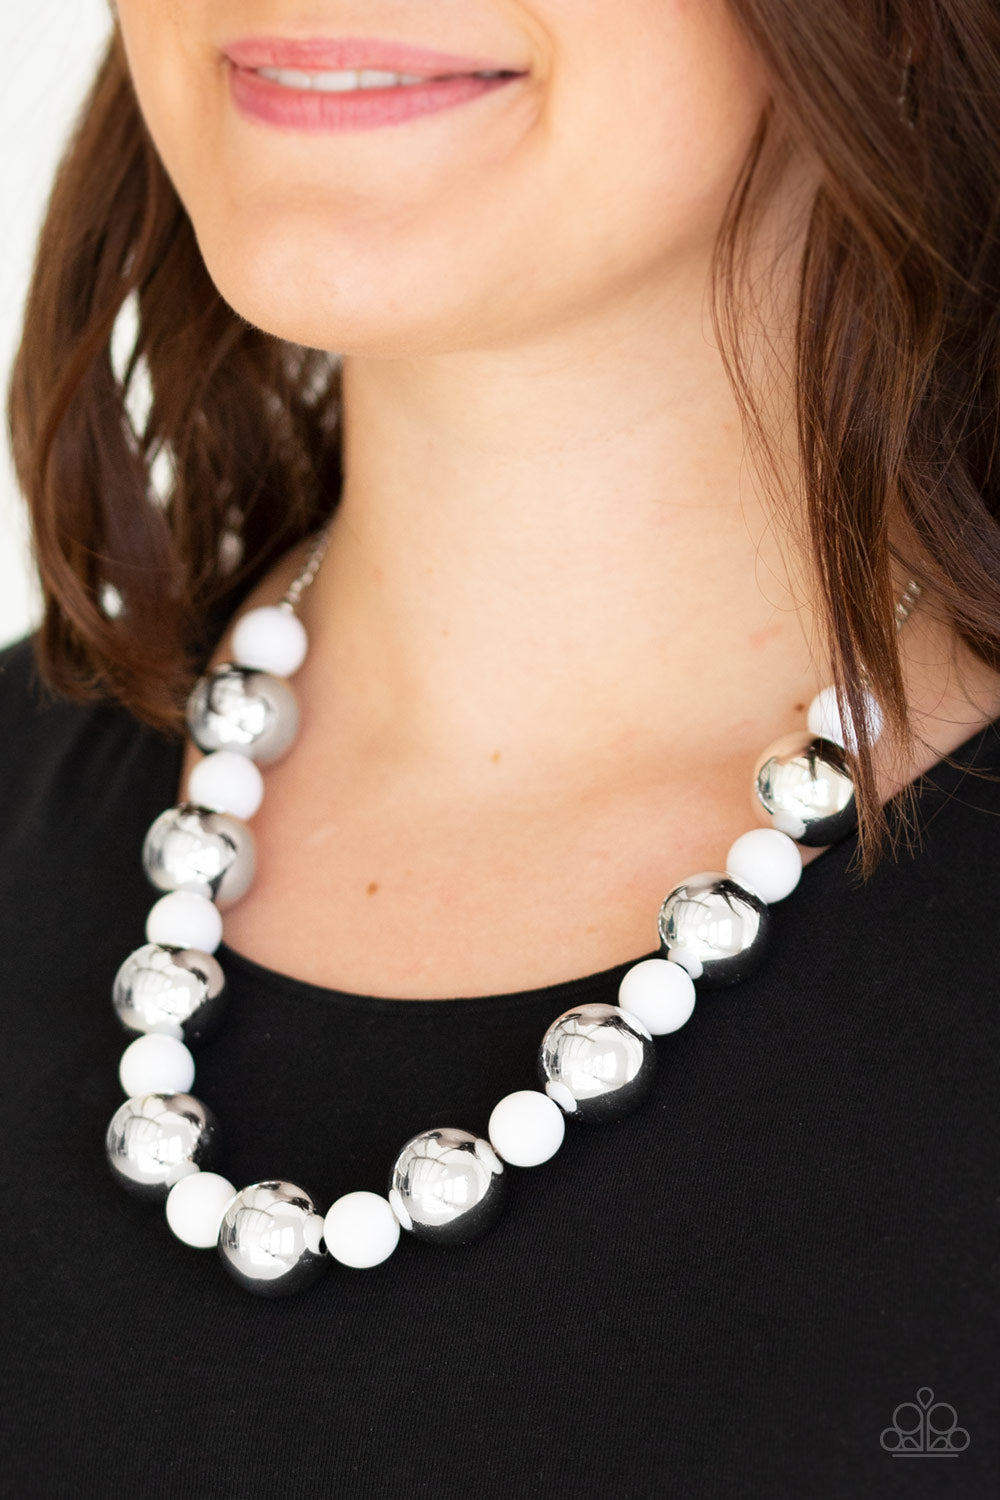 Paparazzi - Top Pop - White Necklace Set - Classy Jewels by Linda